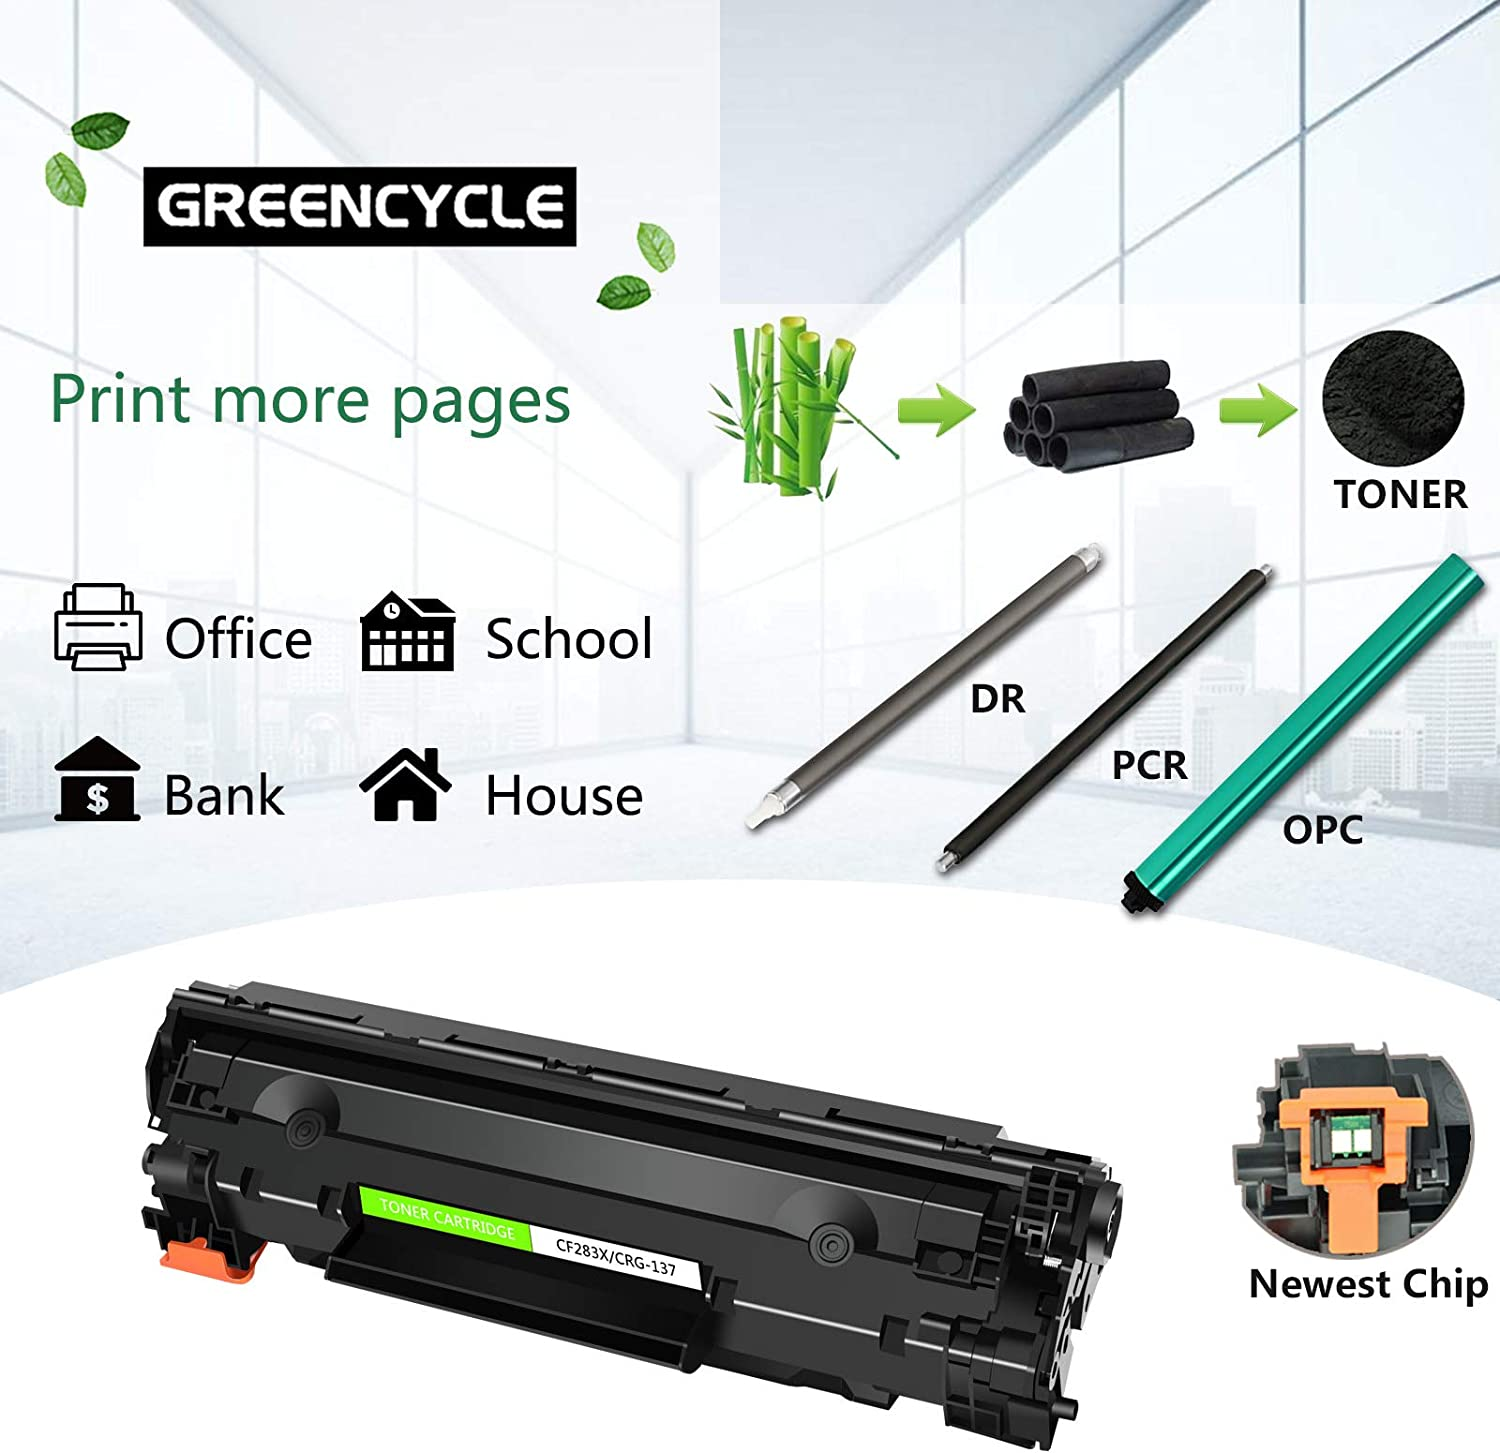 GREENCYCLE Compatible for Canon 137 C137 CRG137 Toner Carrtidge Replacement for ImageClass MF212w ImageClass MF227dw Laser Printer Black,2 Pack